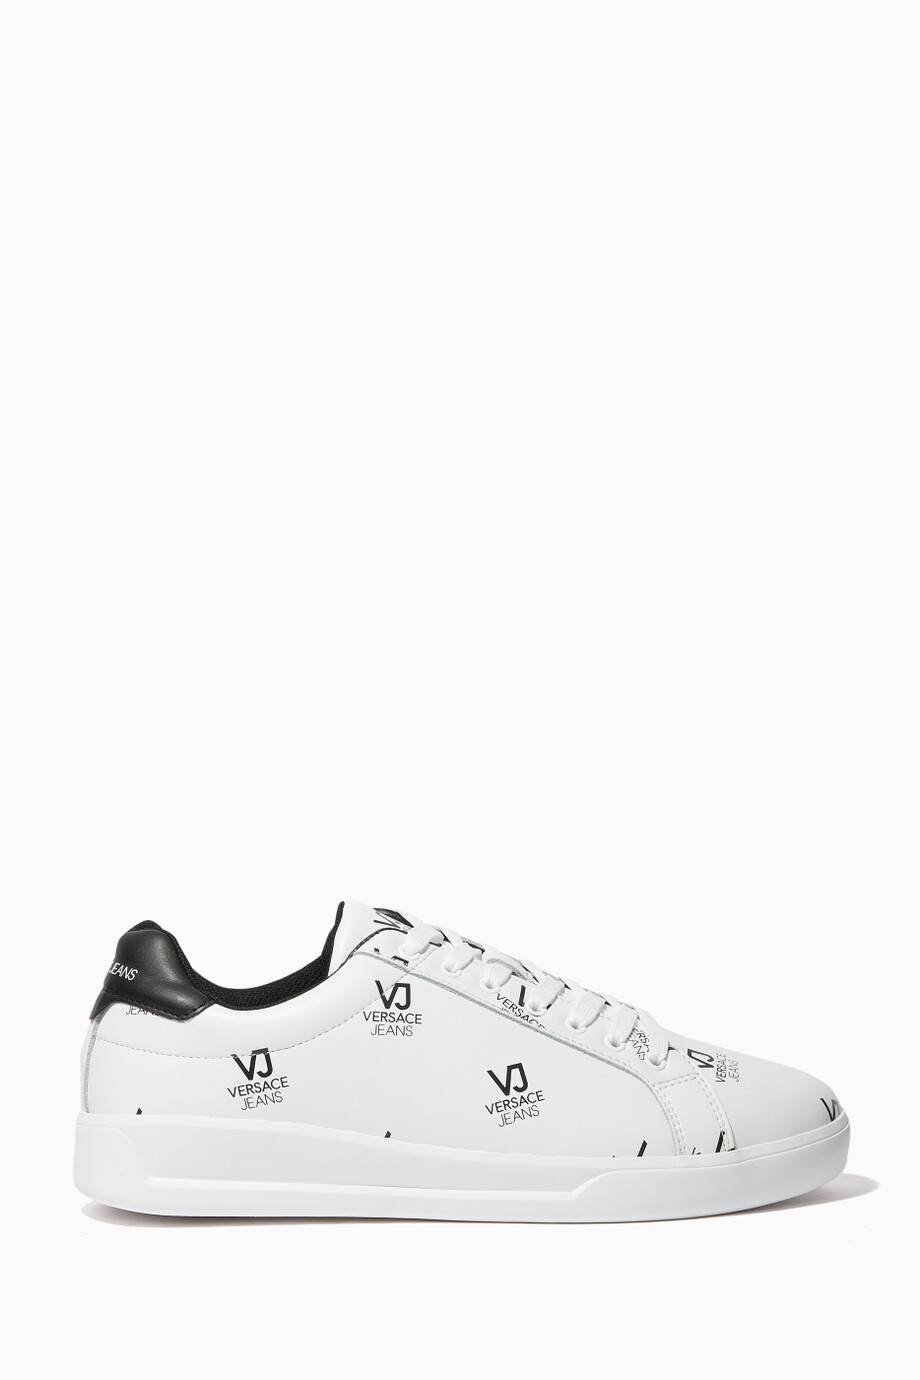 a9f7ee15 Shop Versace Jeans Black White Dotted Logo Print Sneakers for Men ...